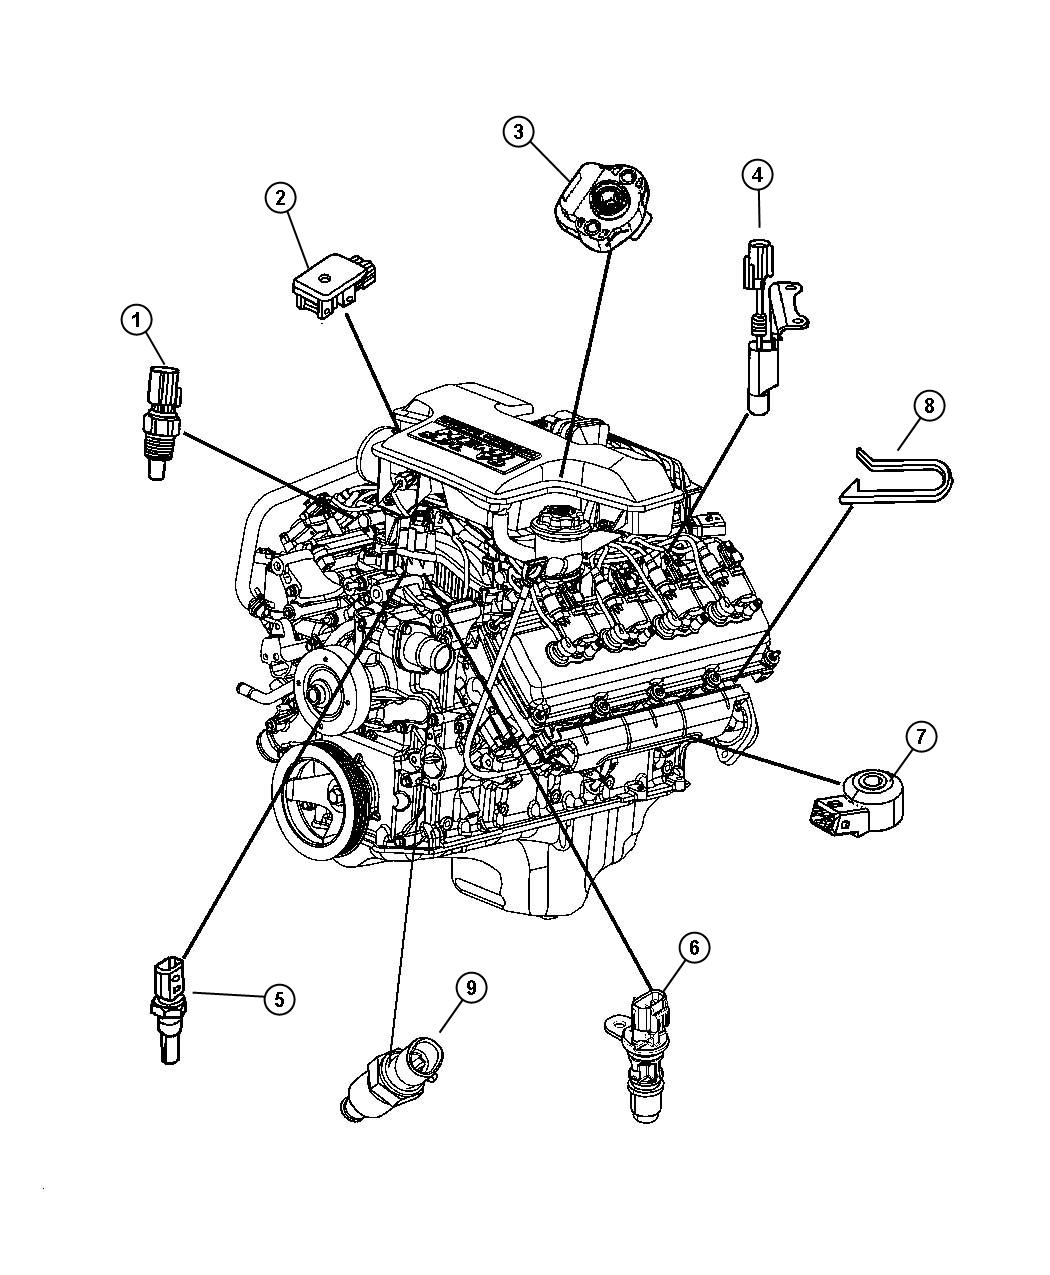 Hemi Engine Diagram